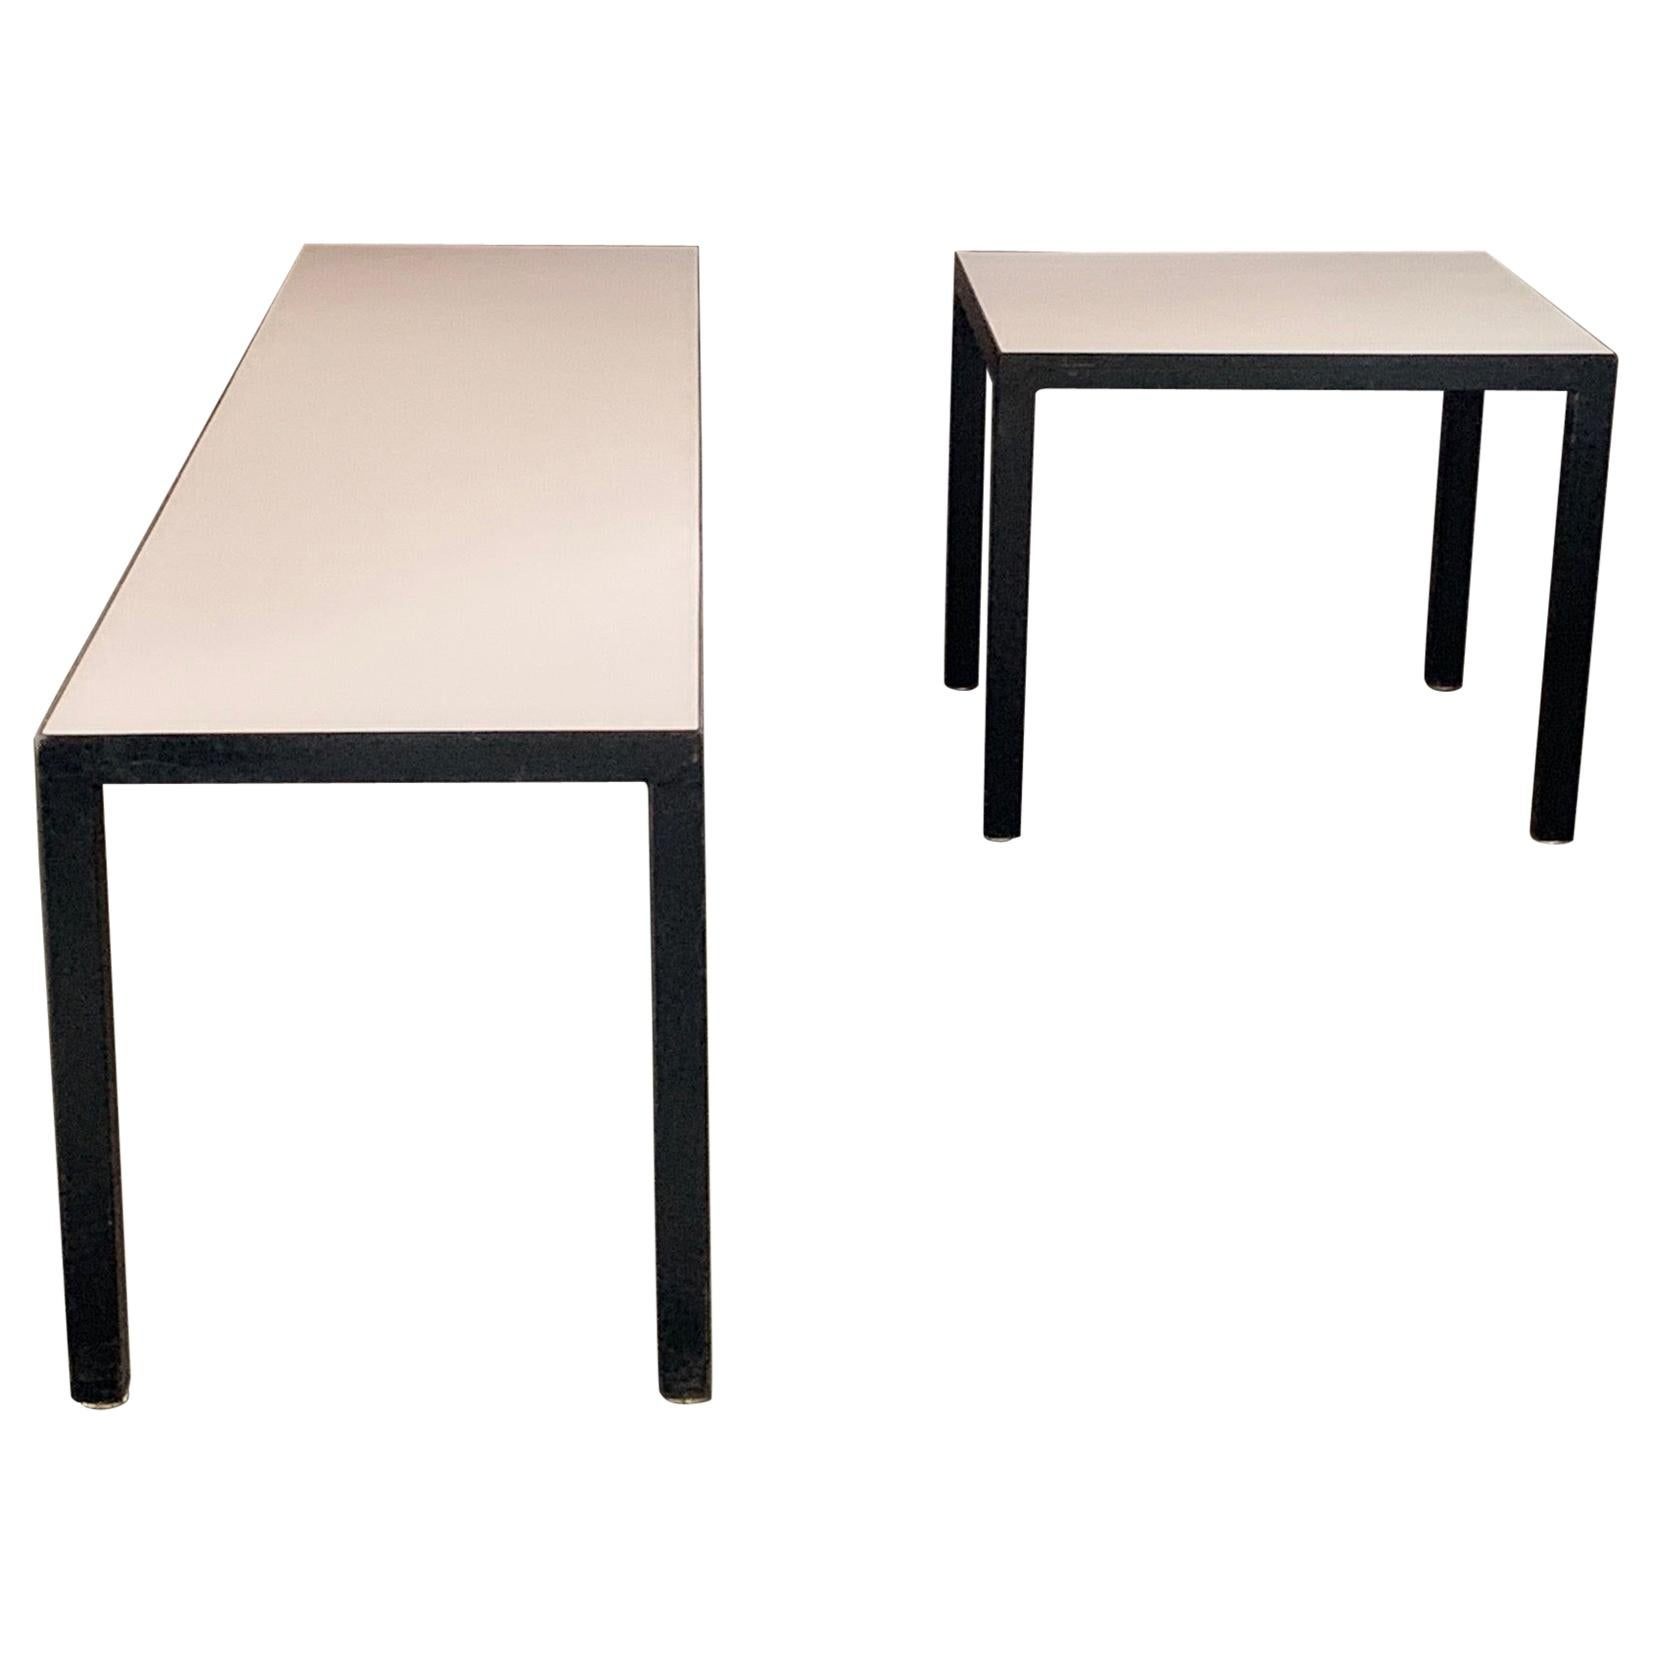 Minimalist Bench and Matching Table by JG Furniture